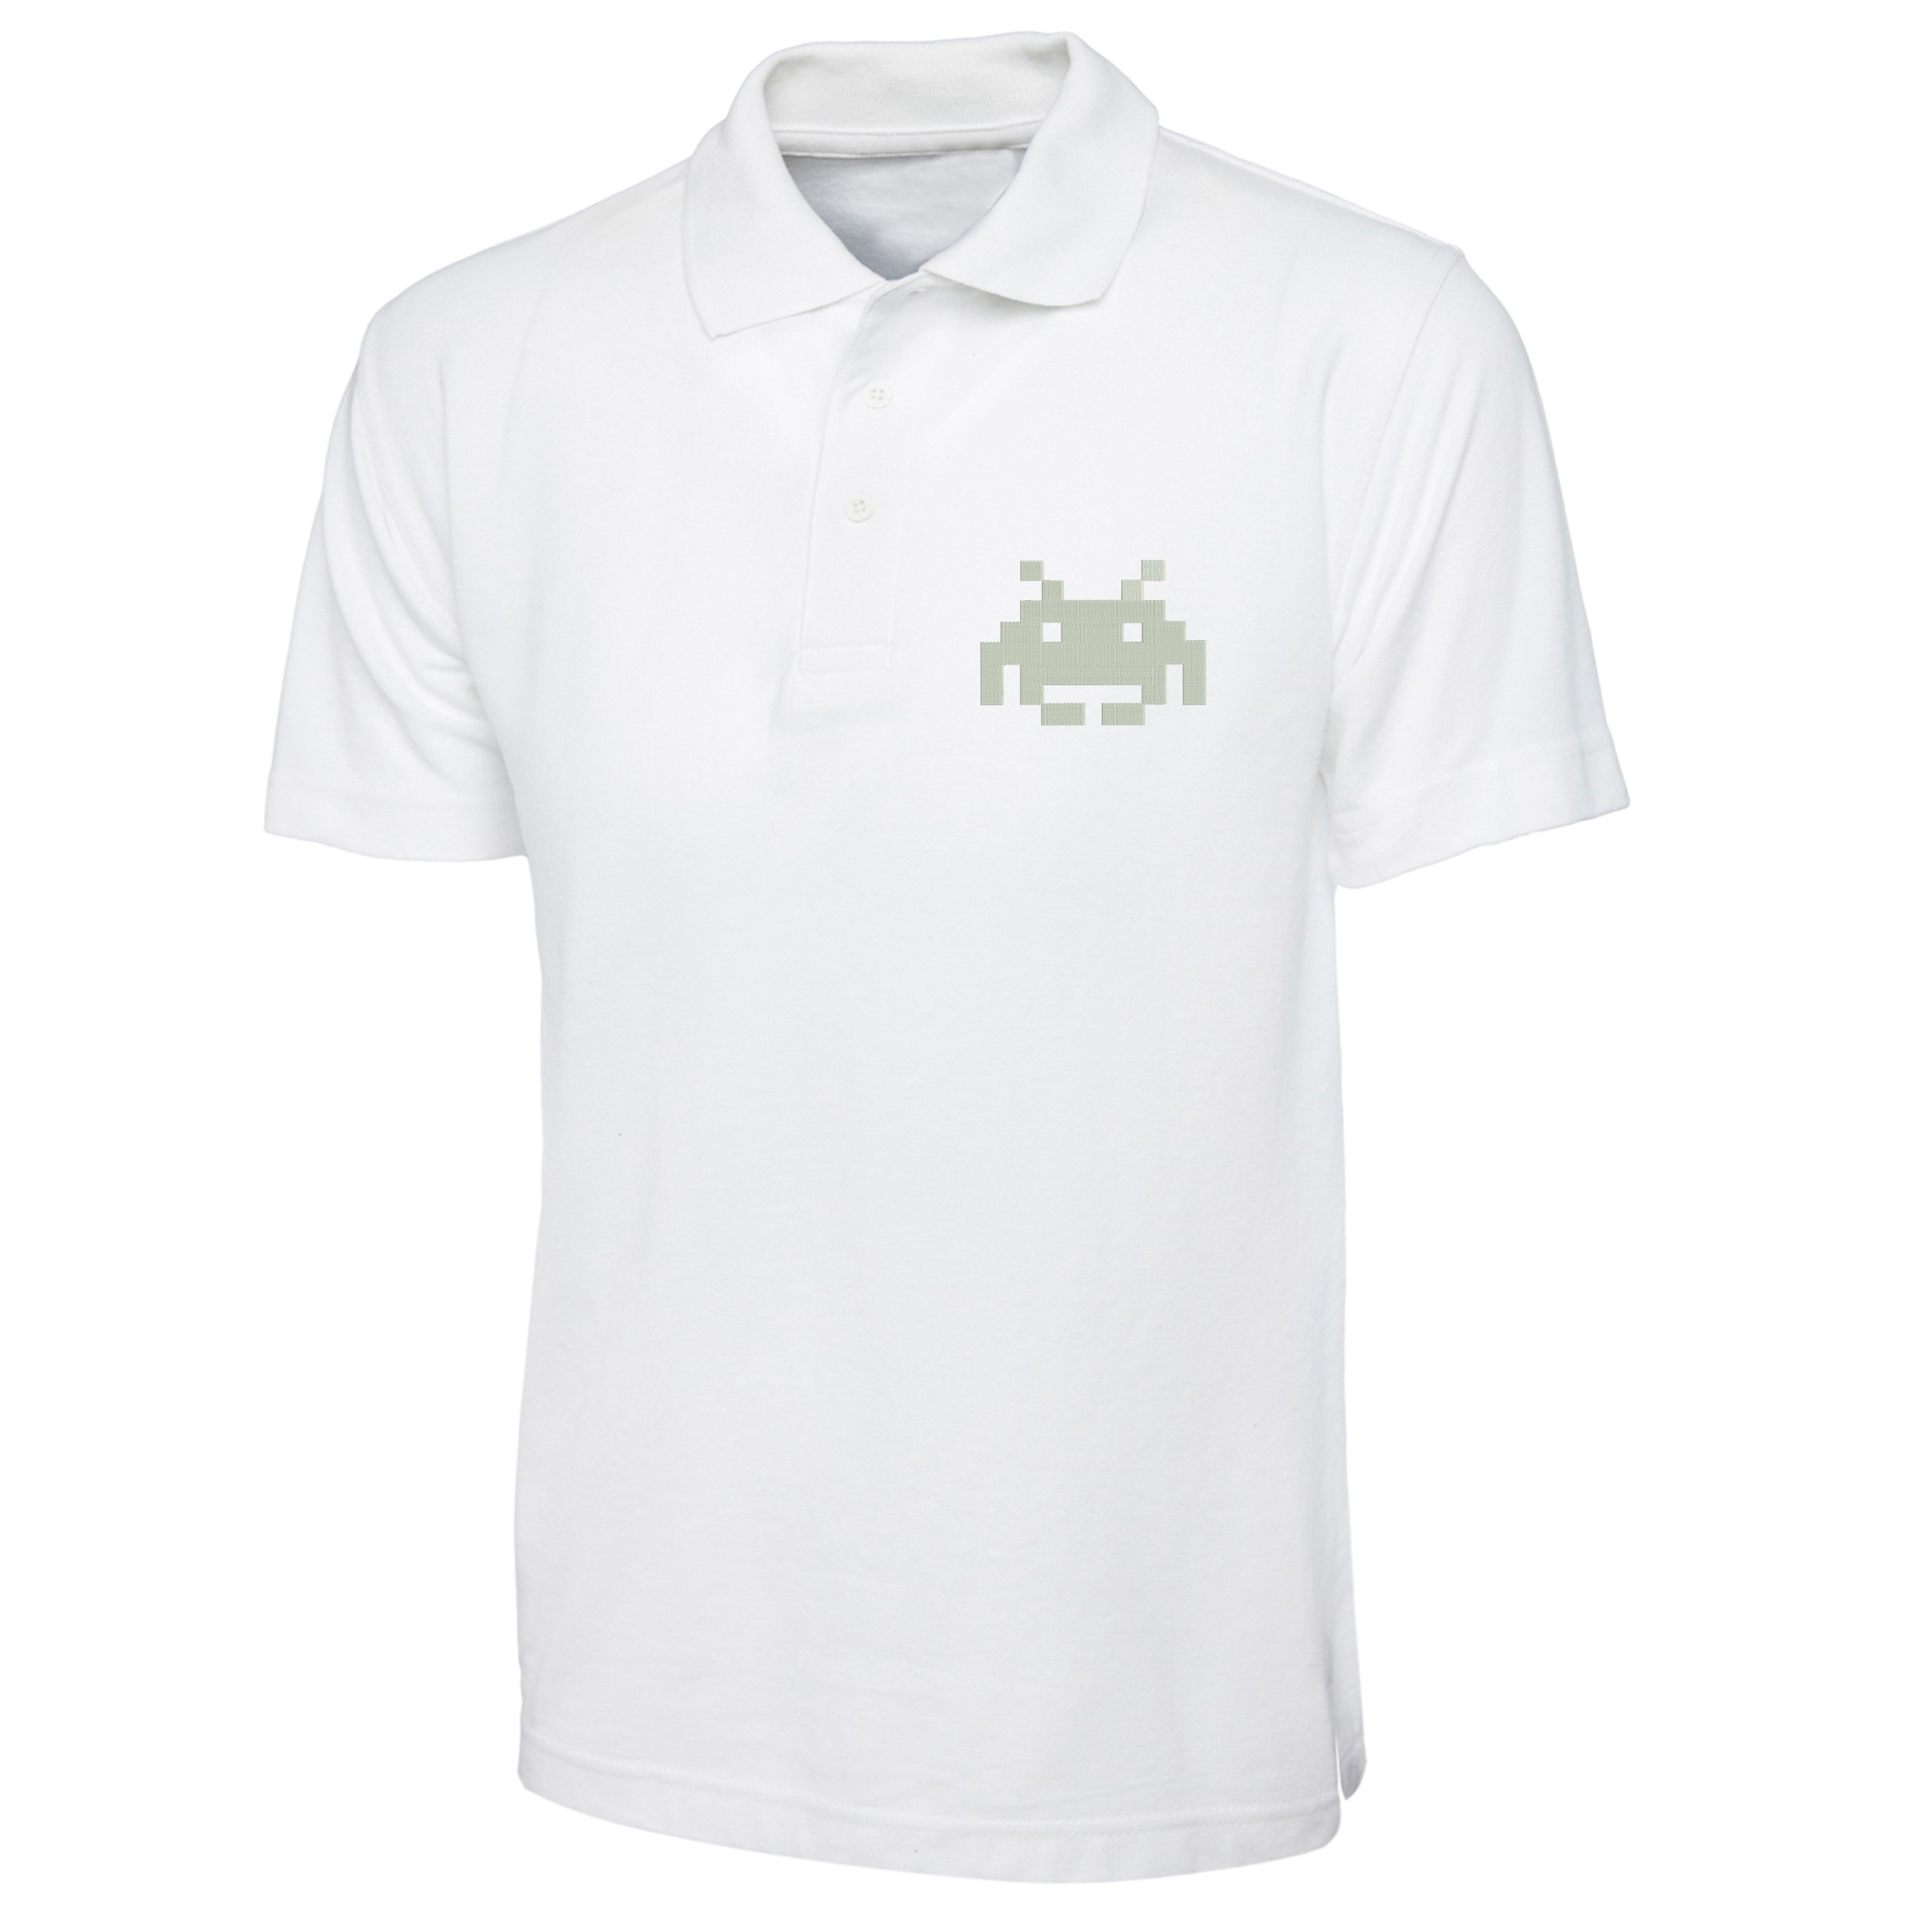 Game-Over-8-bit-Polo-Shirt-Left-Chest-Embroidered-Gift-Polo-Top